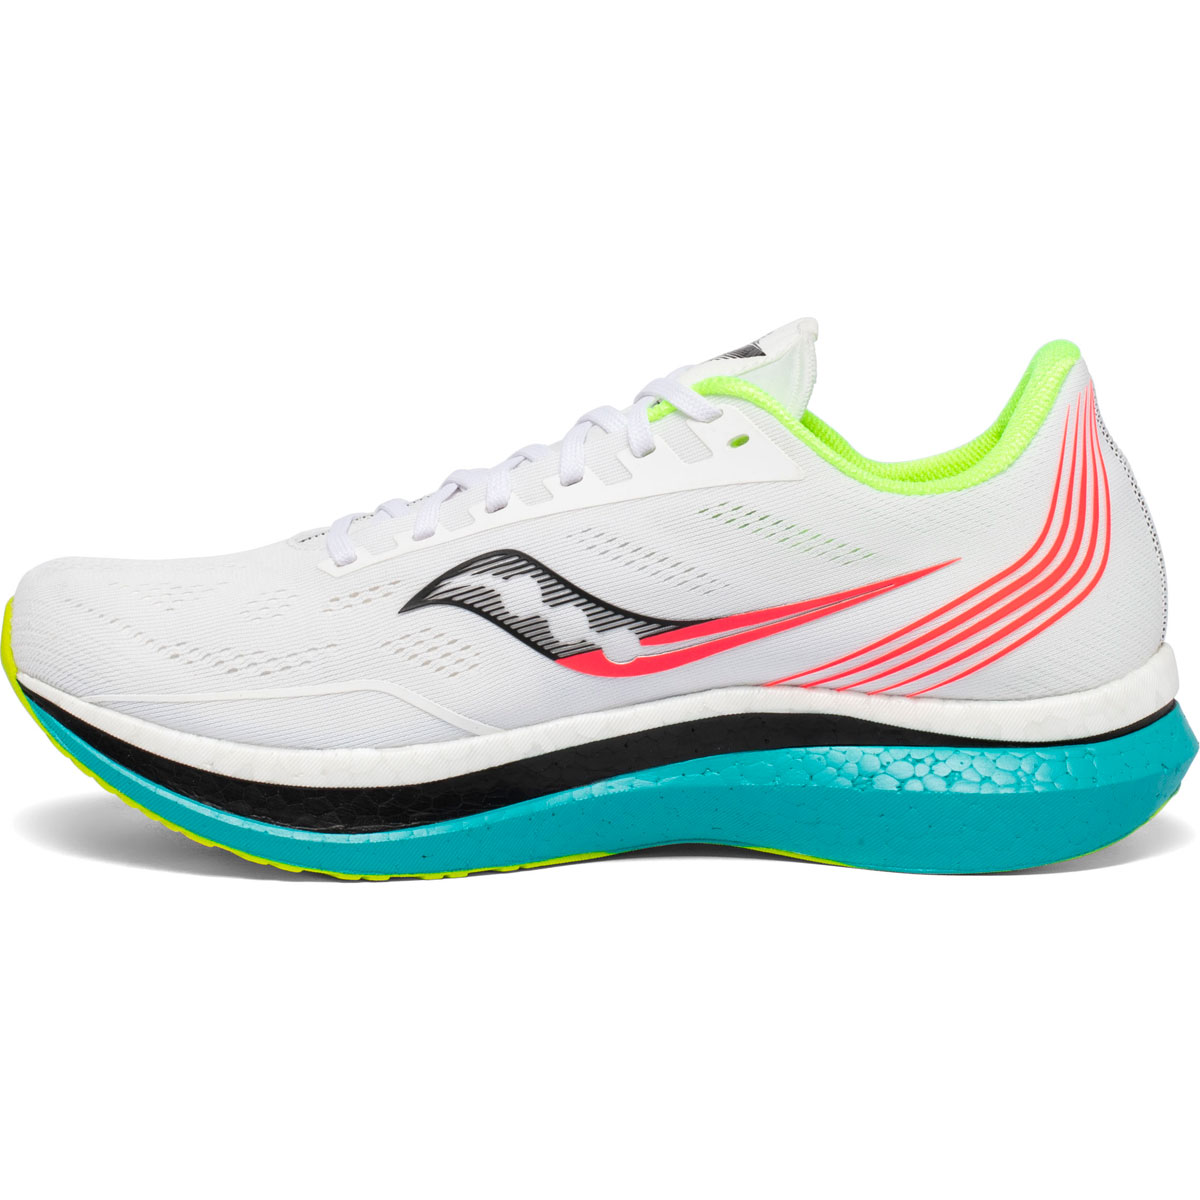 Men's Saucony Endorphin Pro Running Shoe - Color: White Mutant (Regular Width) - Size: 7, White Mutant, large, image 3